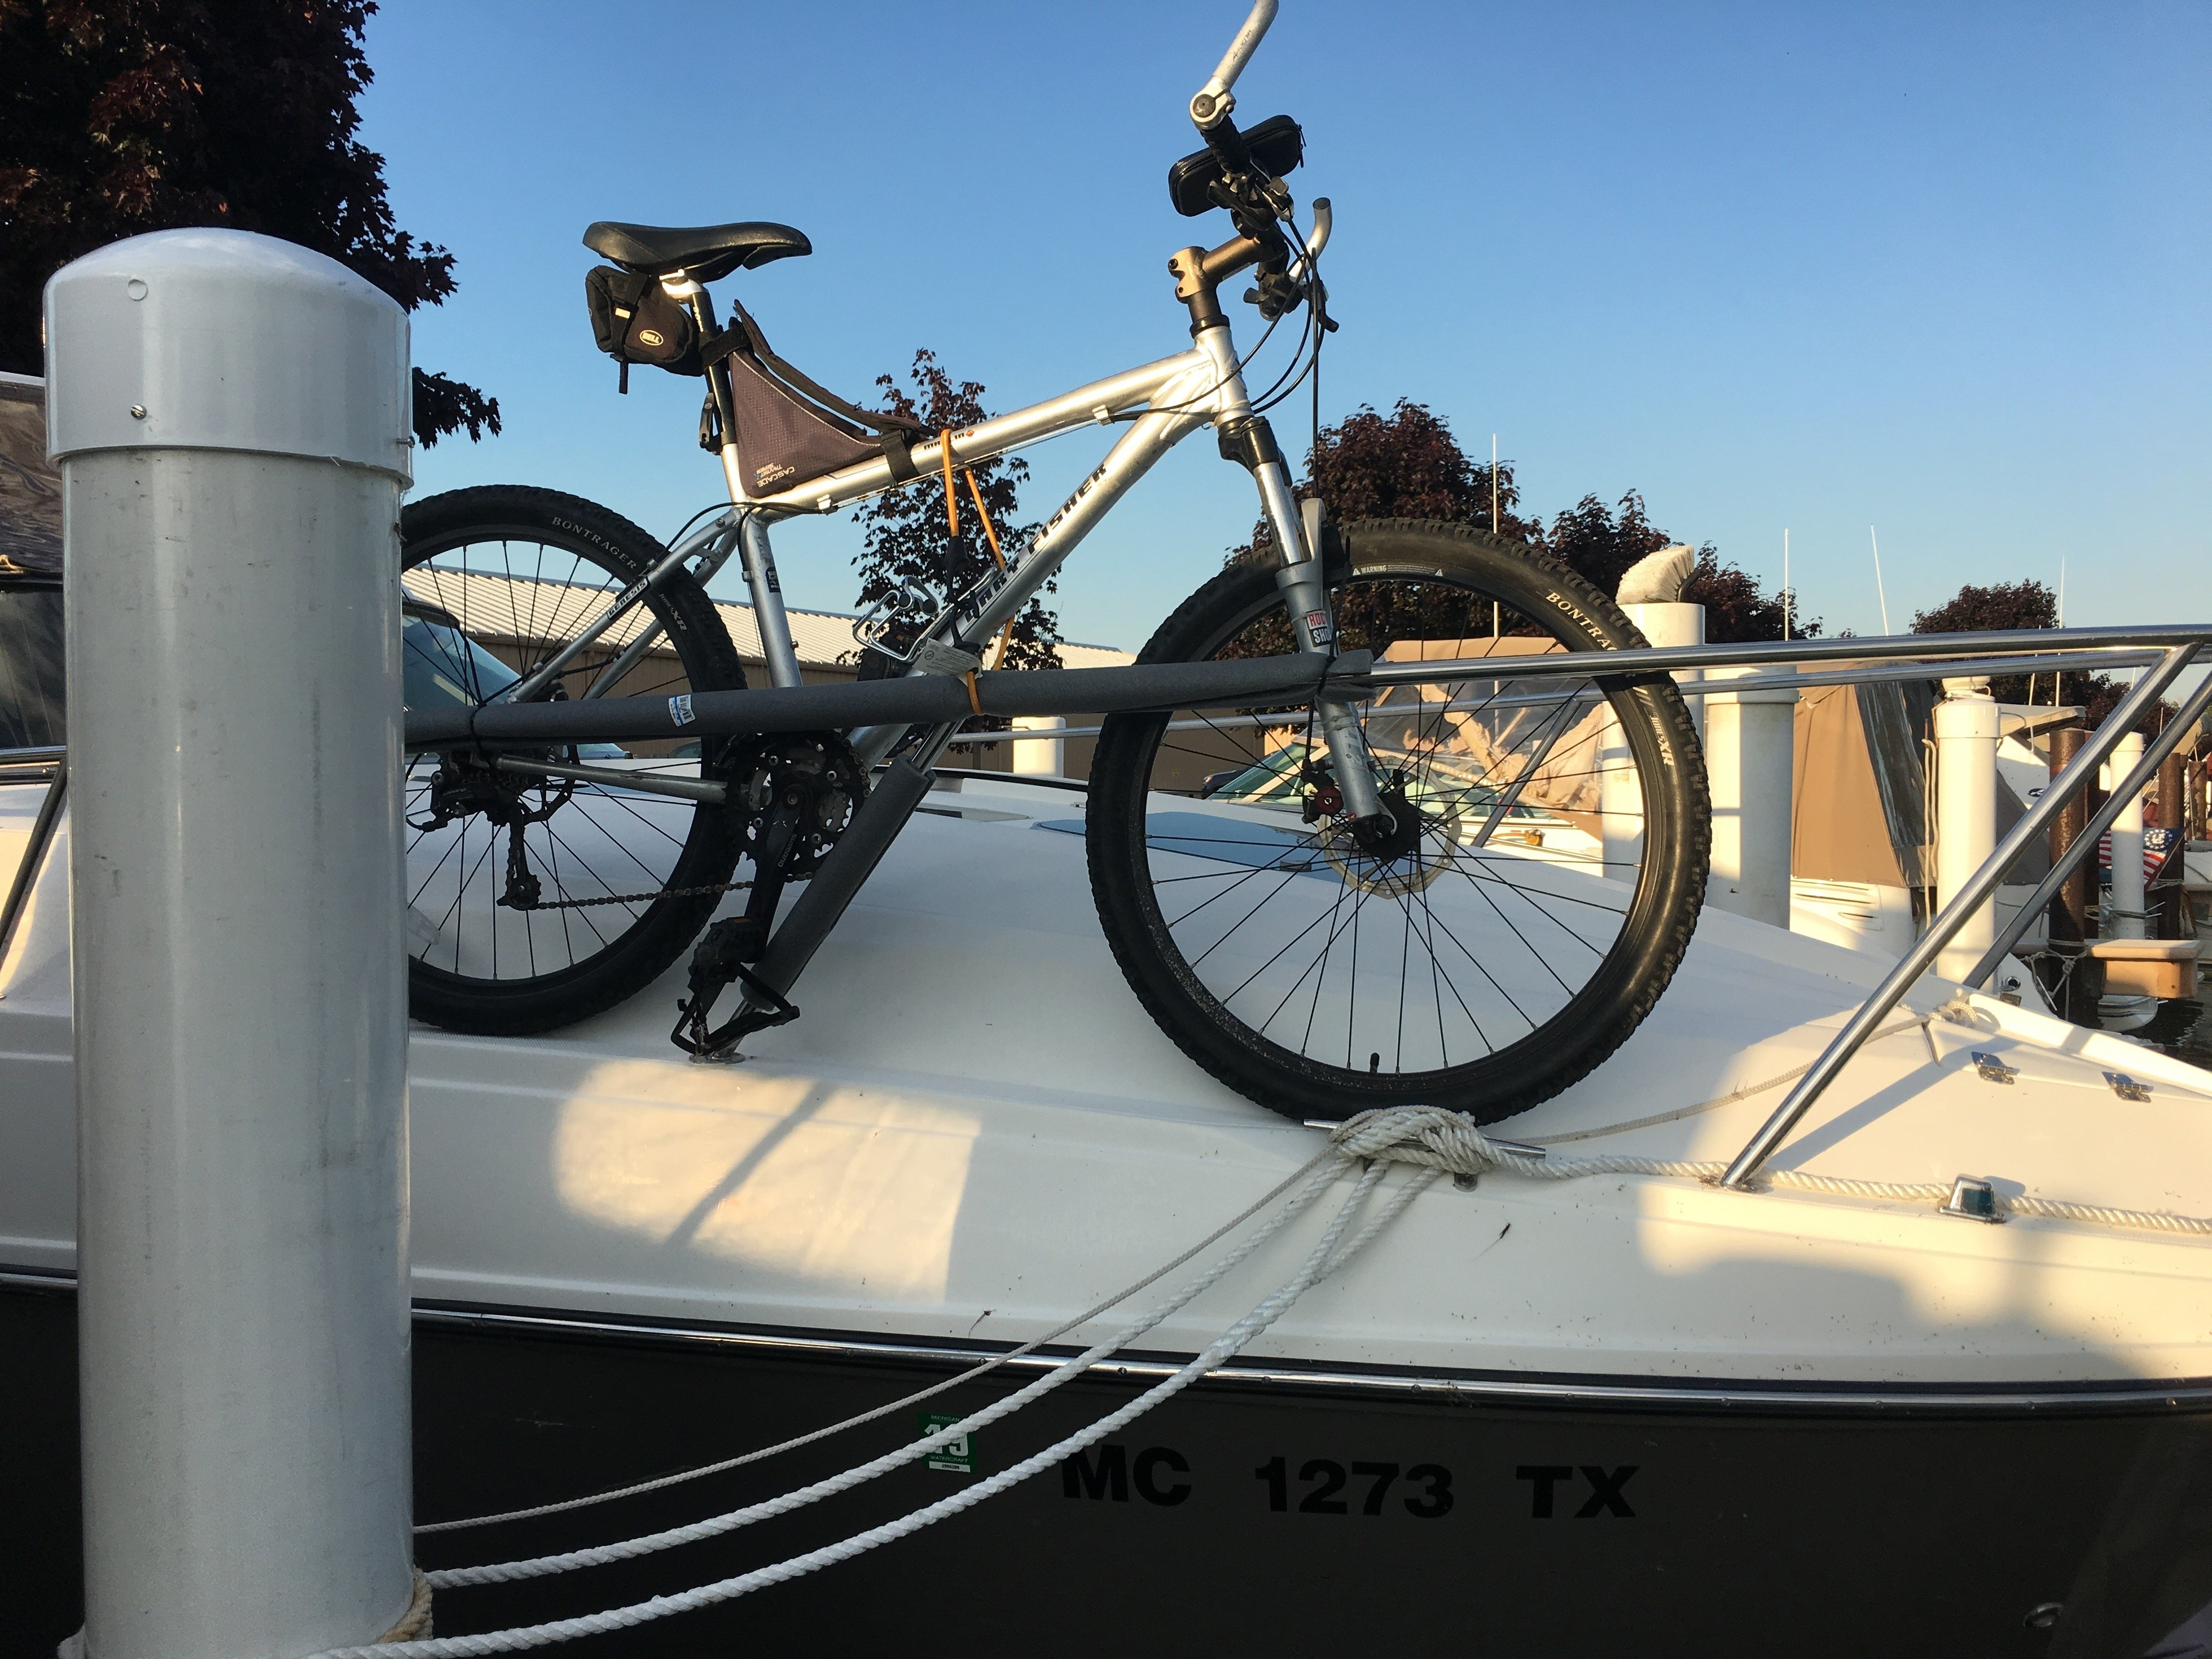 Storing Bikes On Boats: Rinker 310EC Bicycle Storage Recommendation